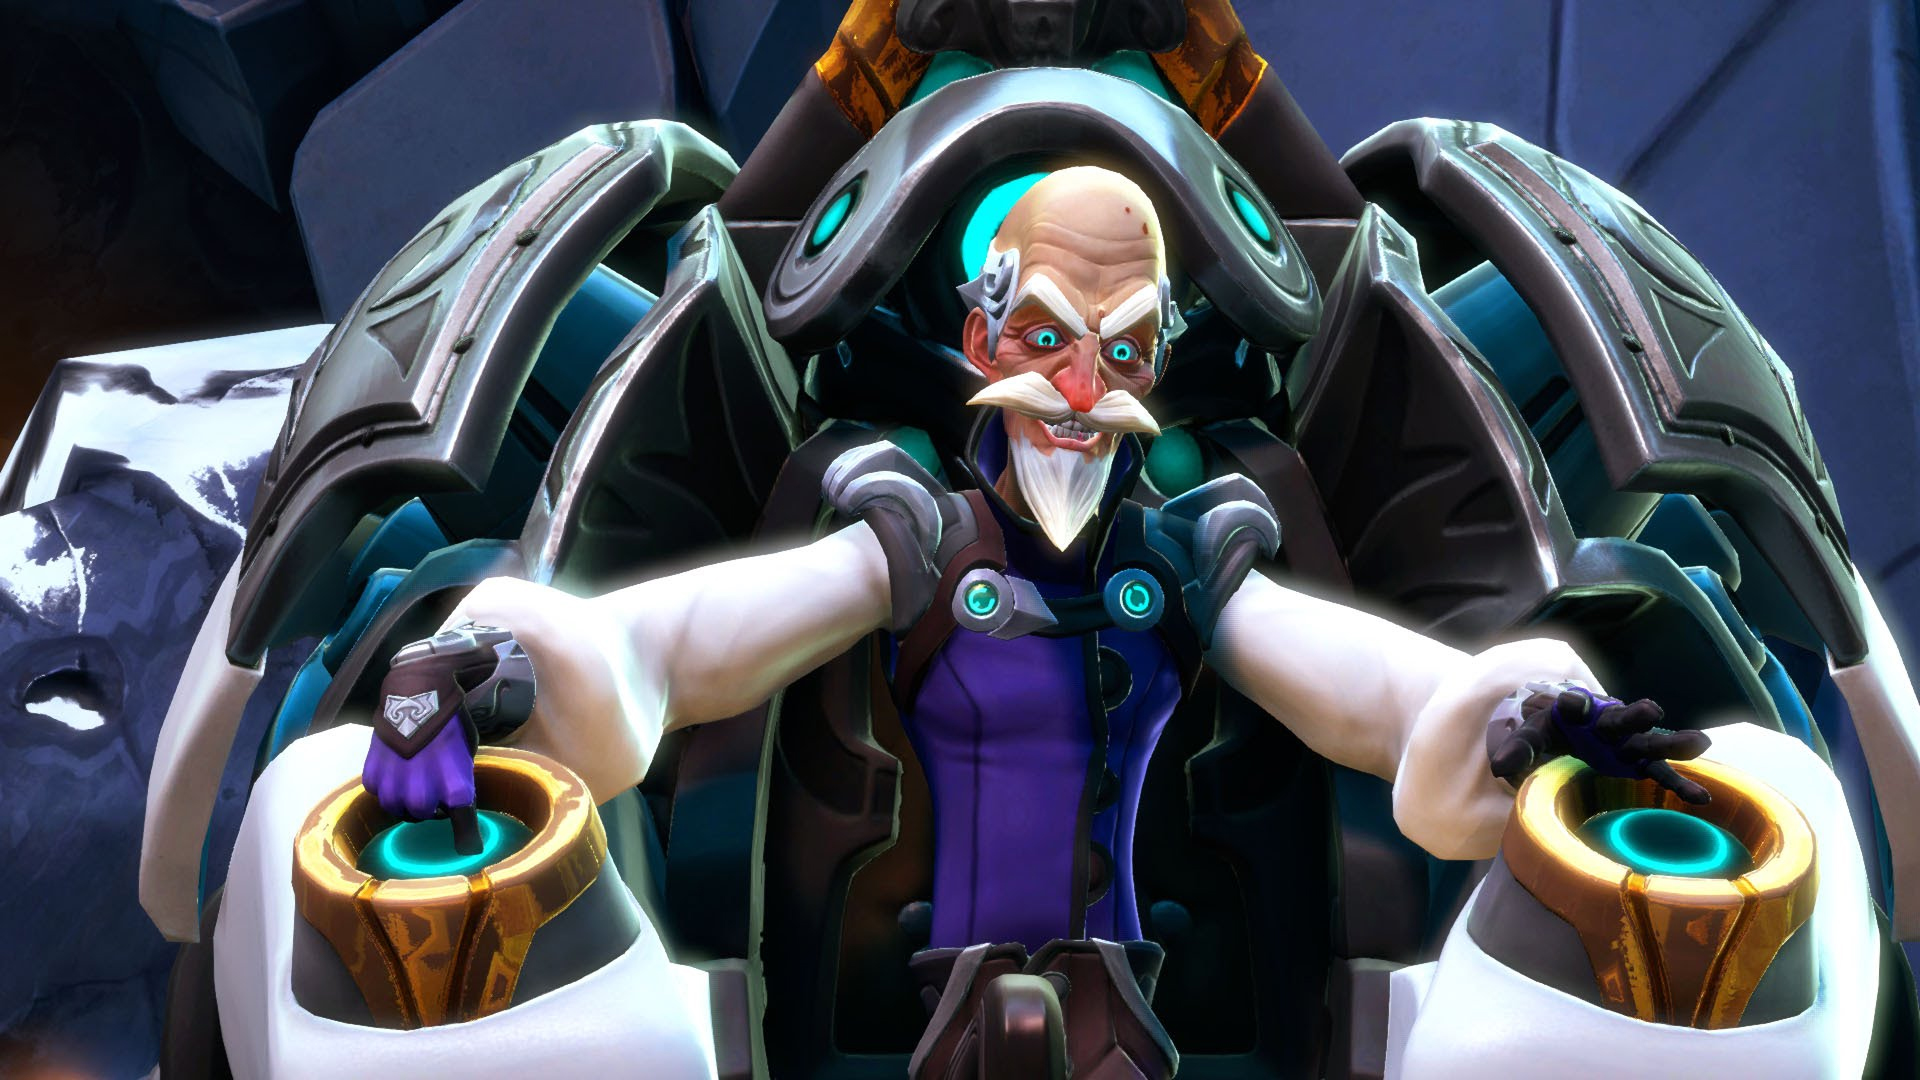 Final Two Battleborn Characters Revealed